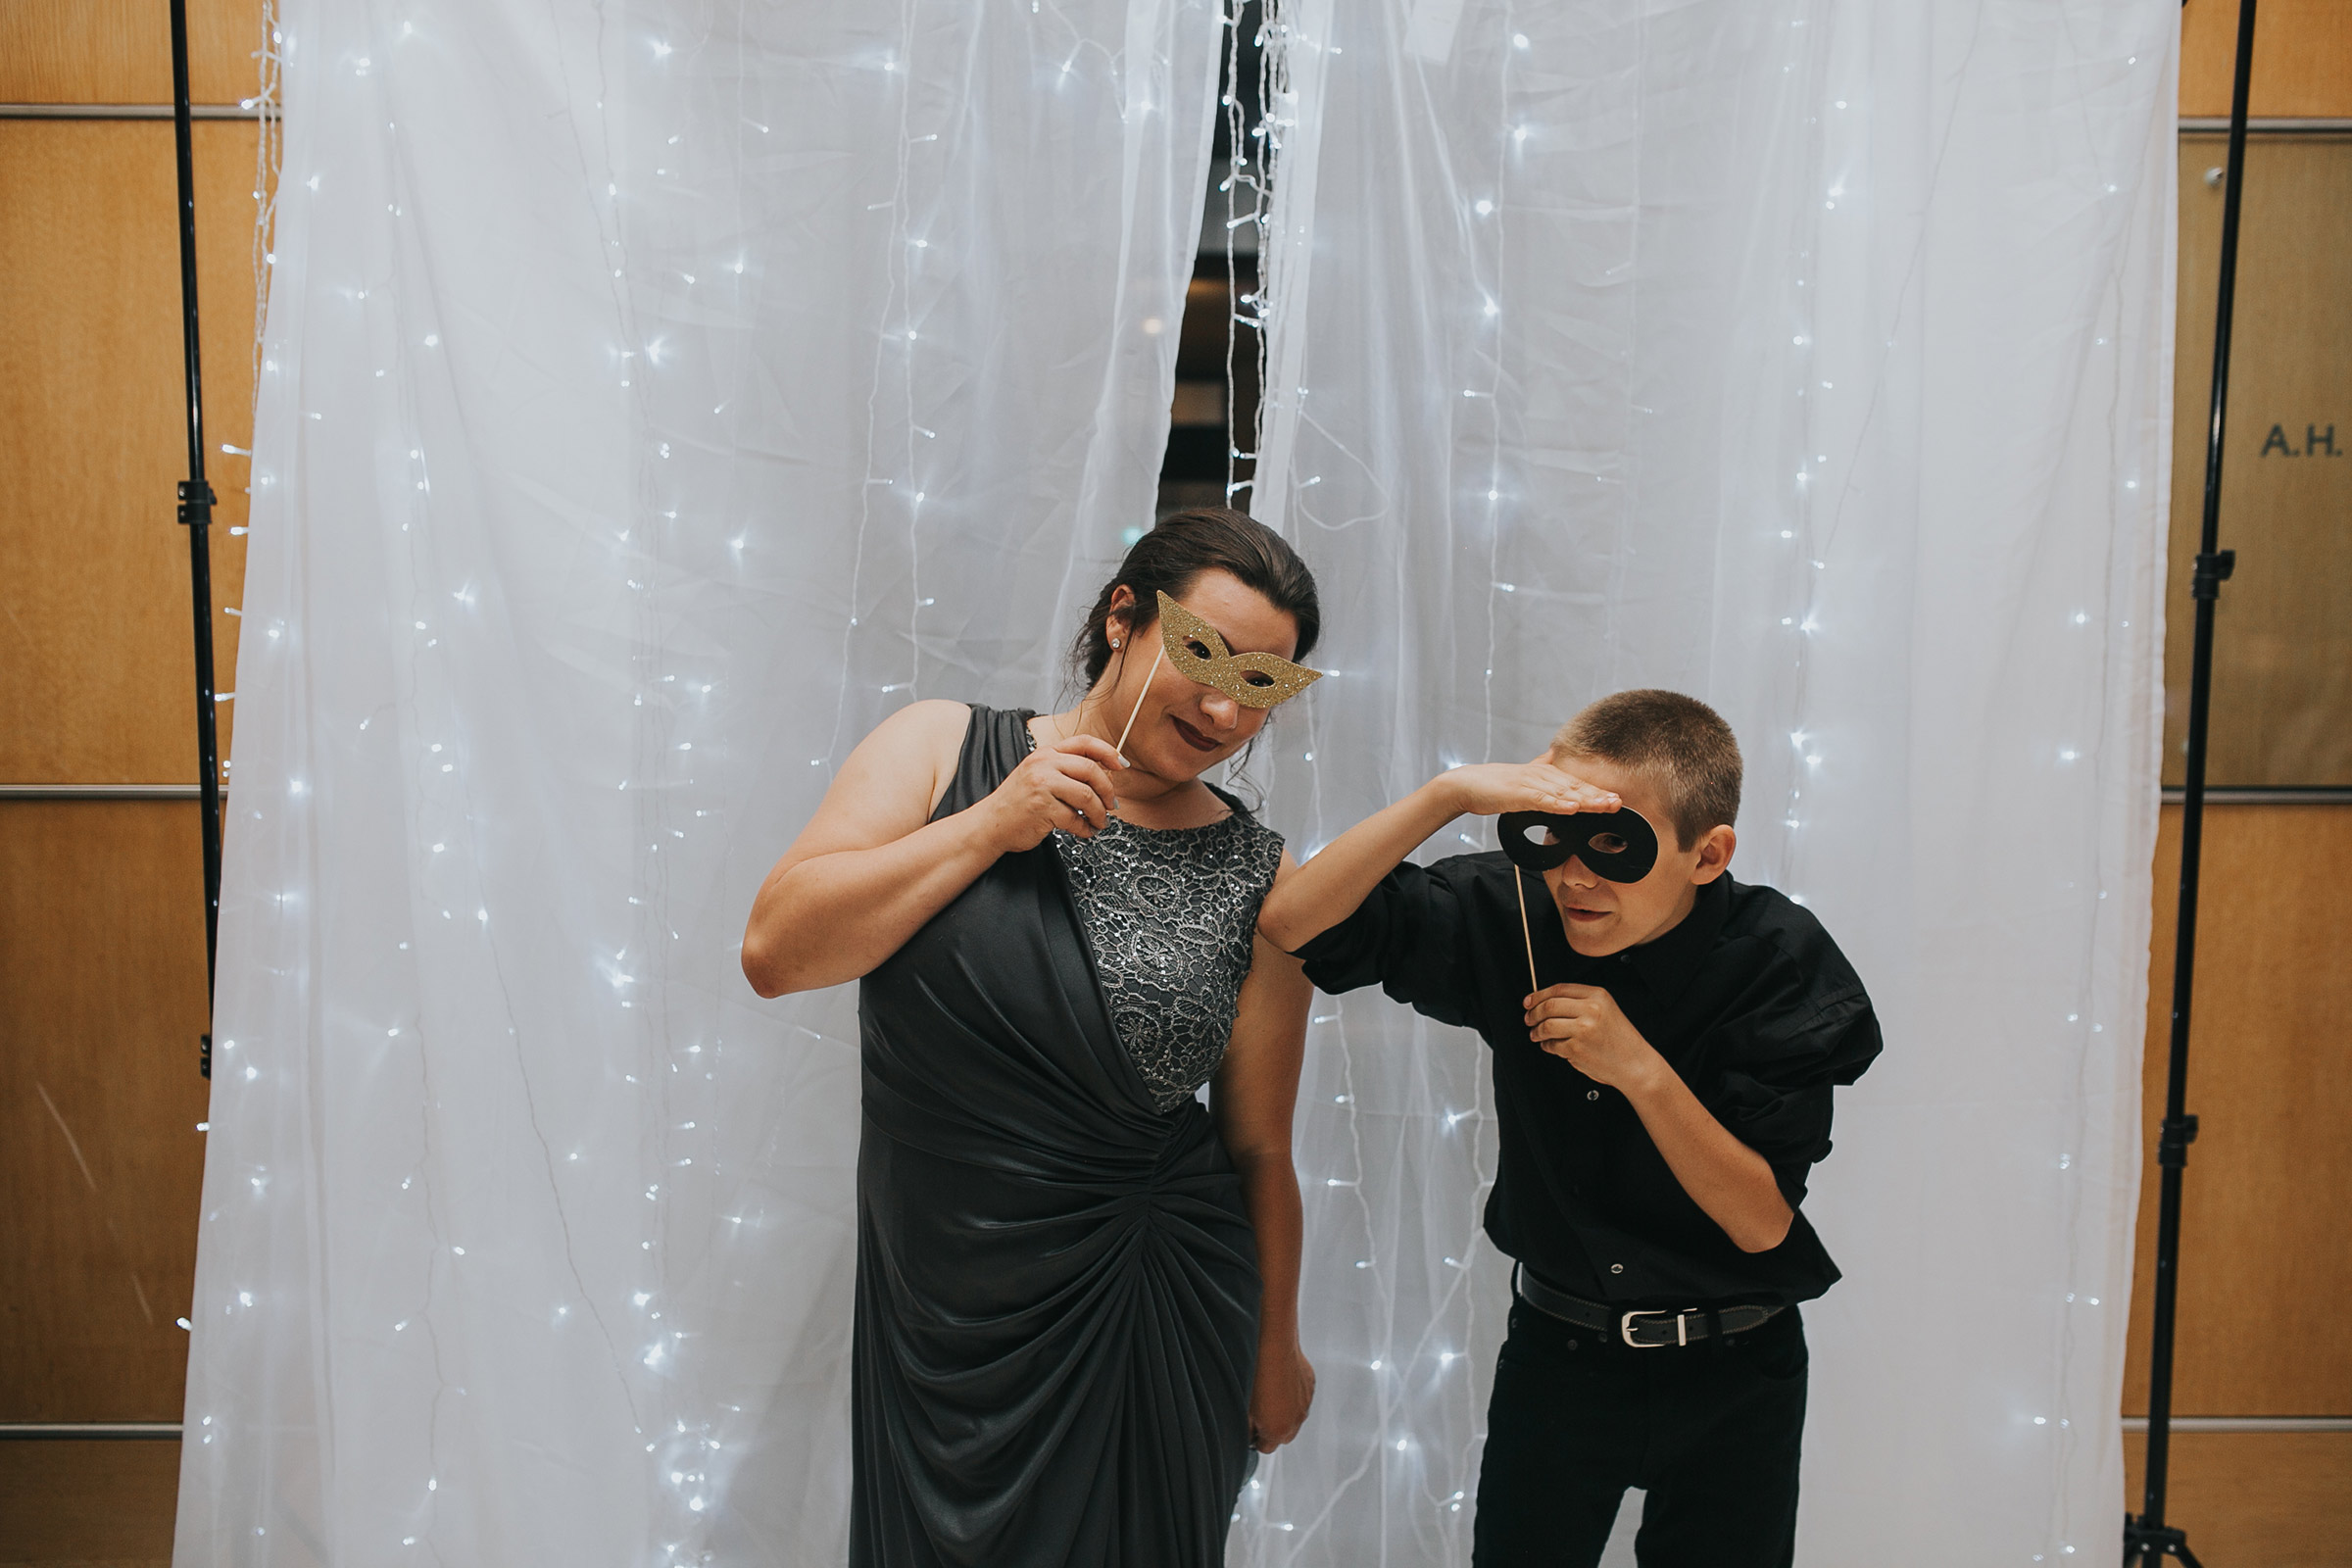 mom-guest-and-son-posing-with-photobooth-props-desmoines-iowa-art-center-raelyn-ramey-photography.jpg